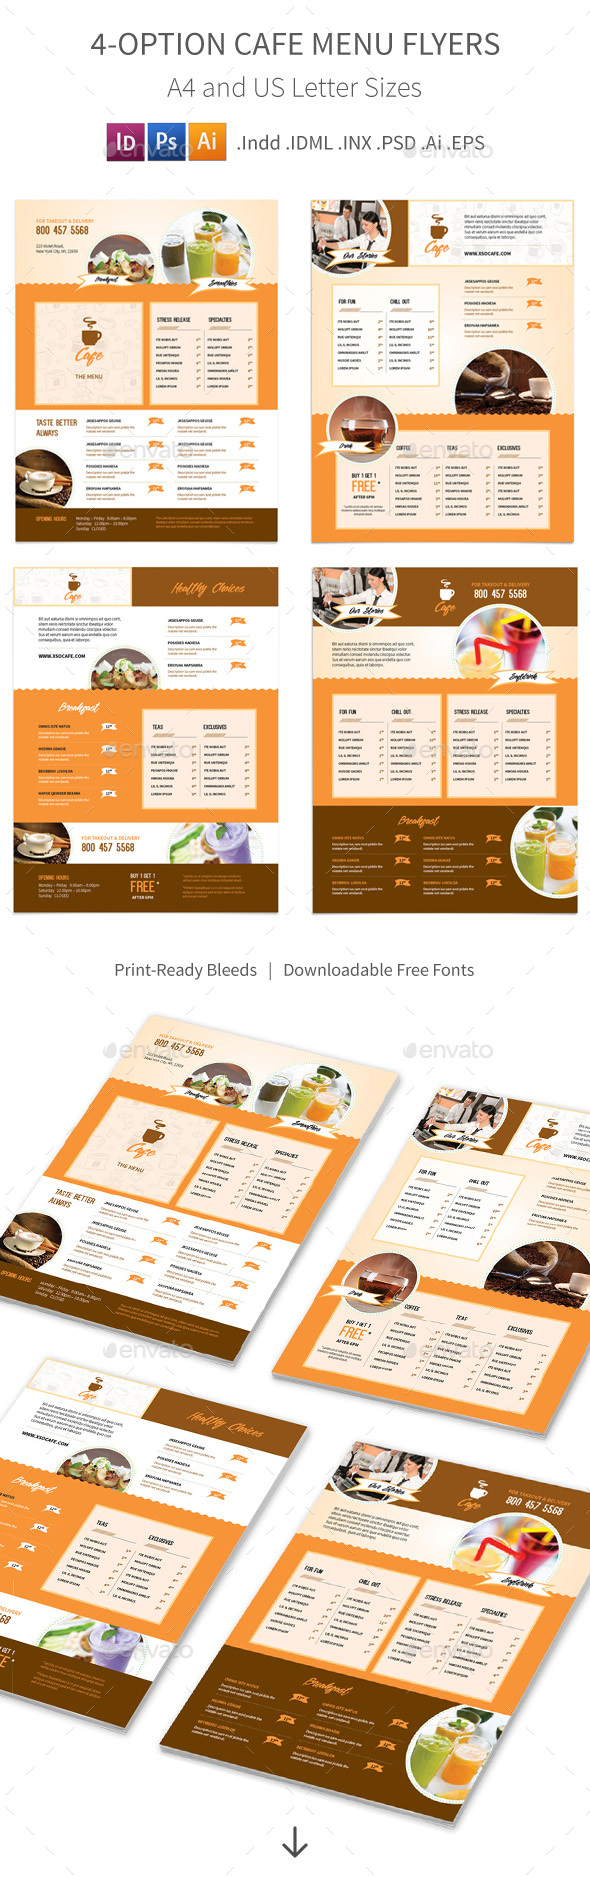 Cafe Menu Flyers – 4 Options